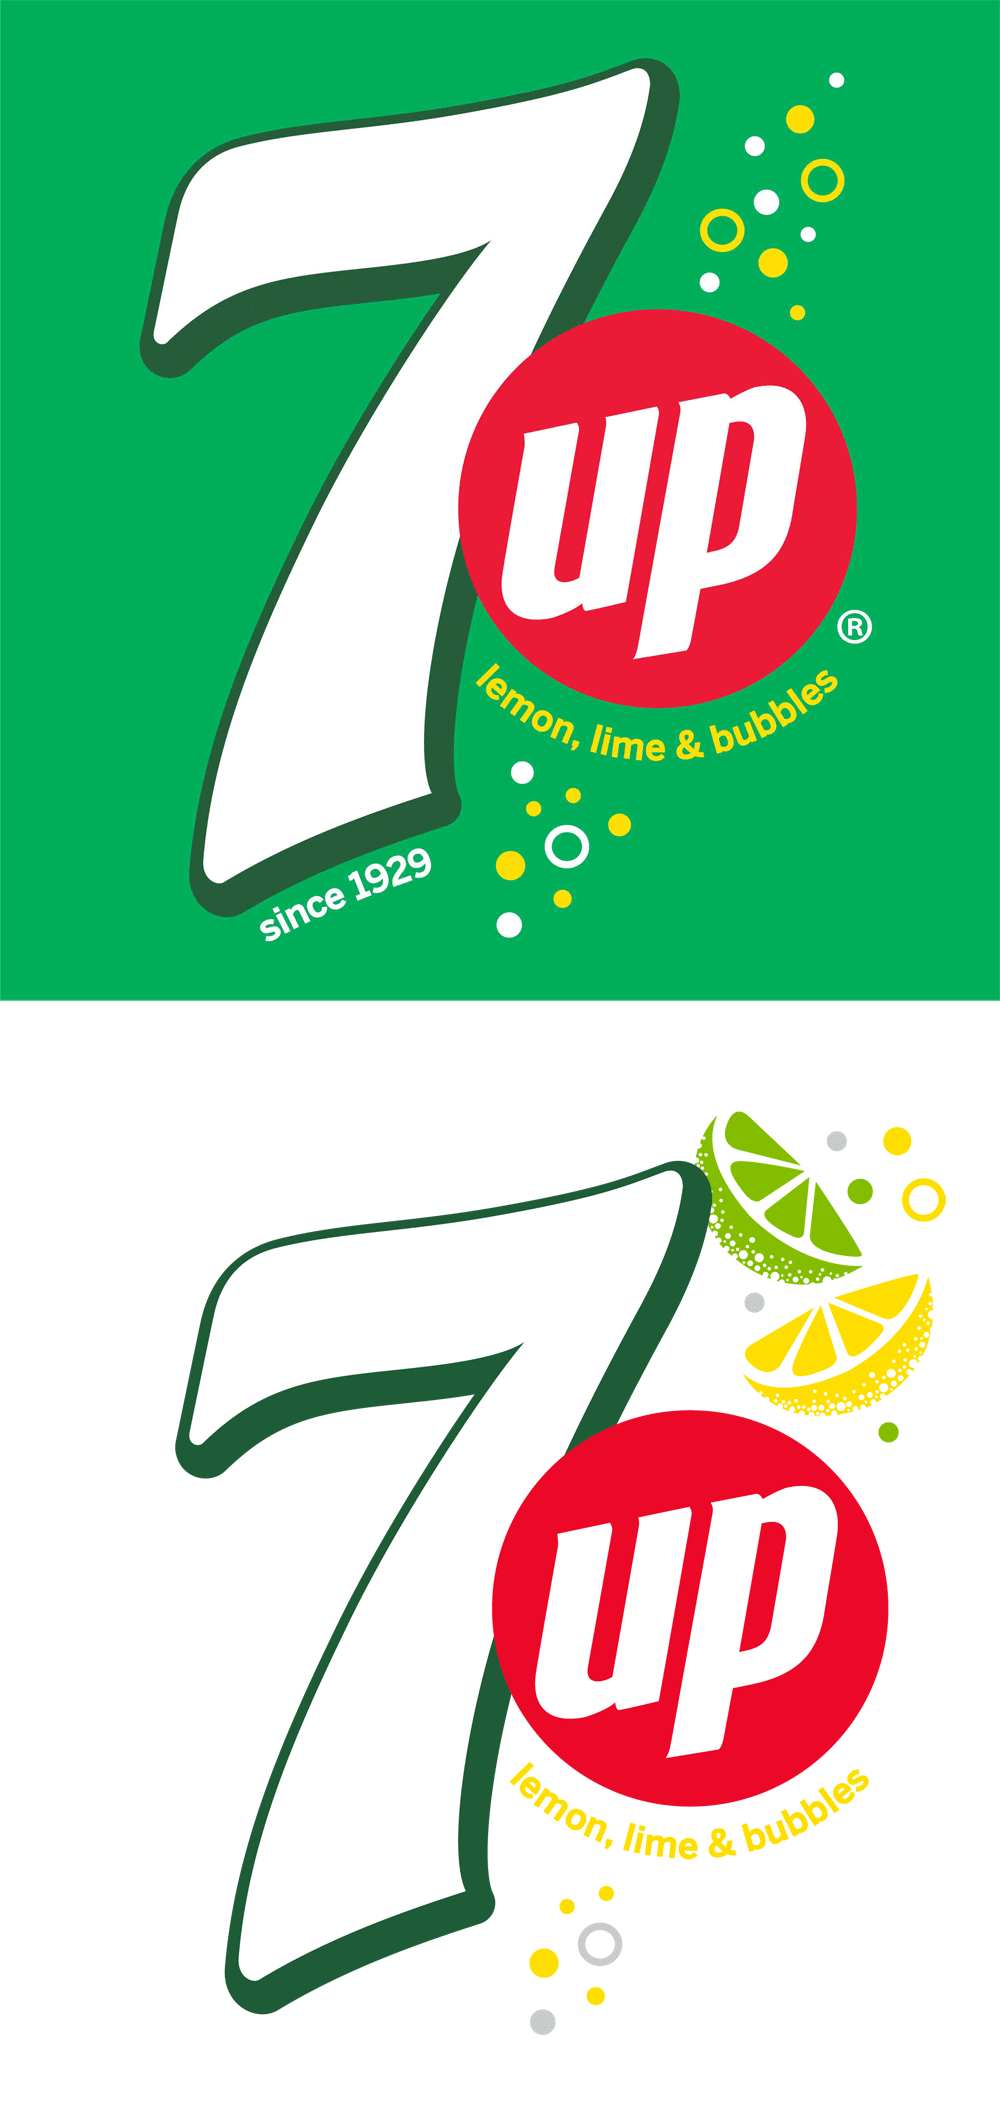 7up_2014_logo_detail_official